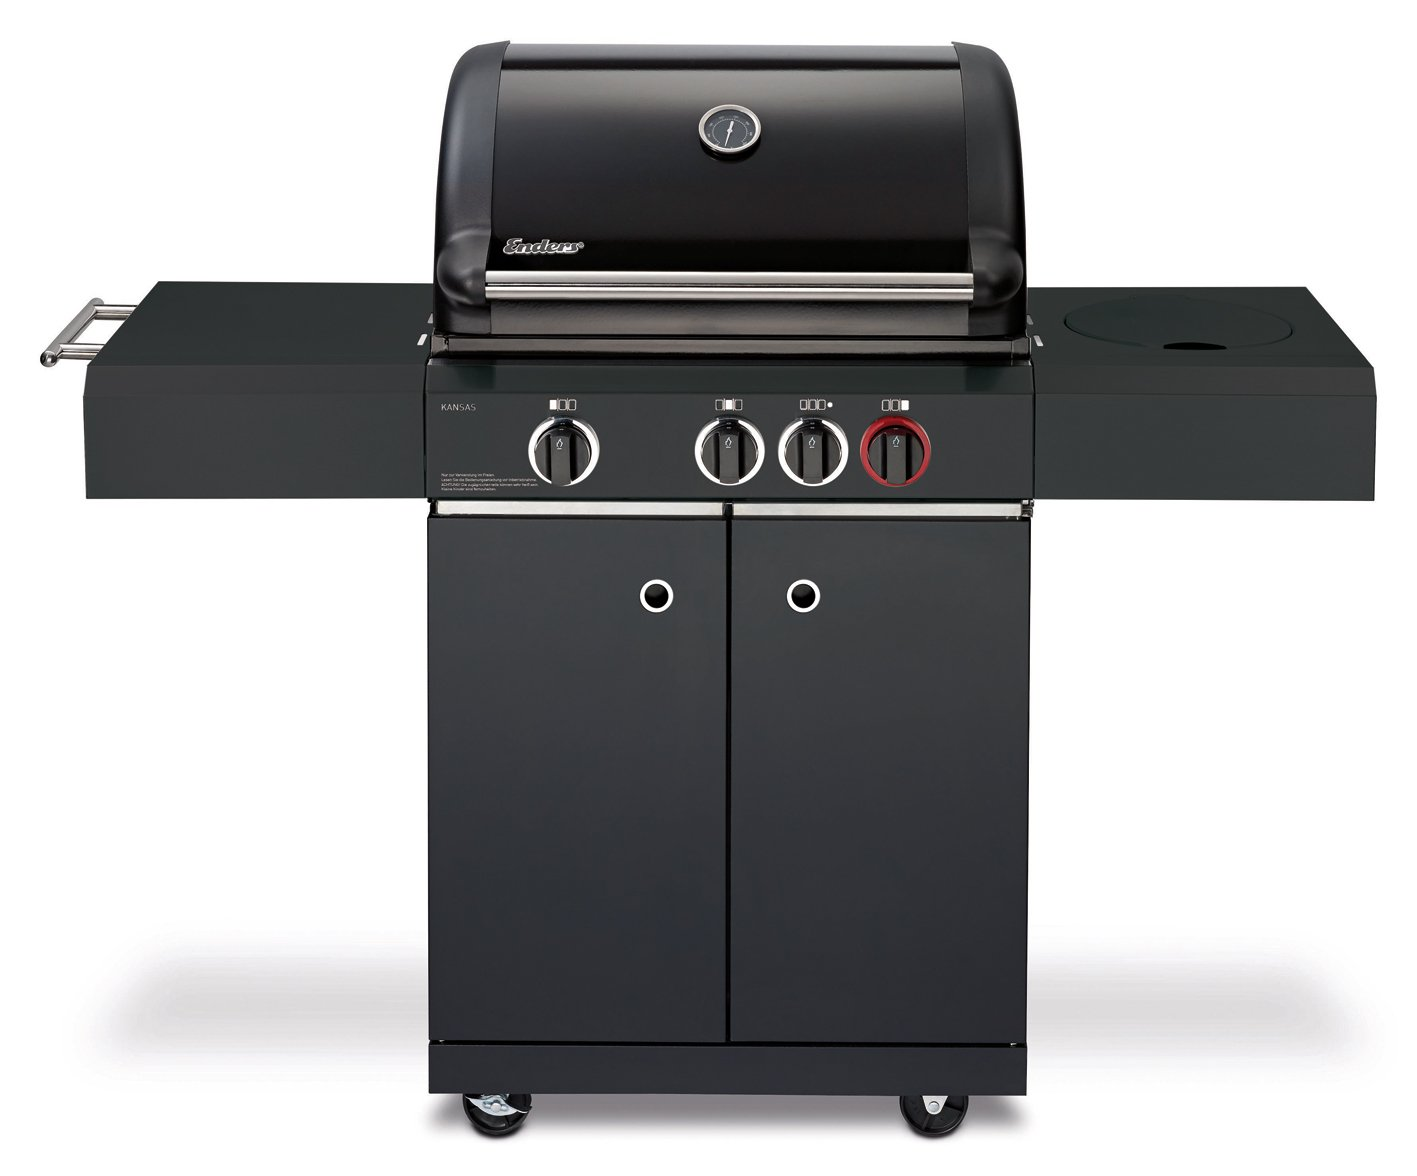 Enders Gasgrill Boston Test : Enders gasgrill kansas black 3 k turbo: amazon.de: garten